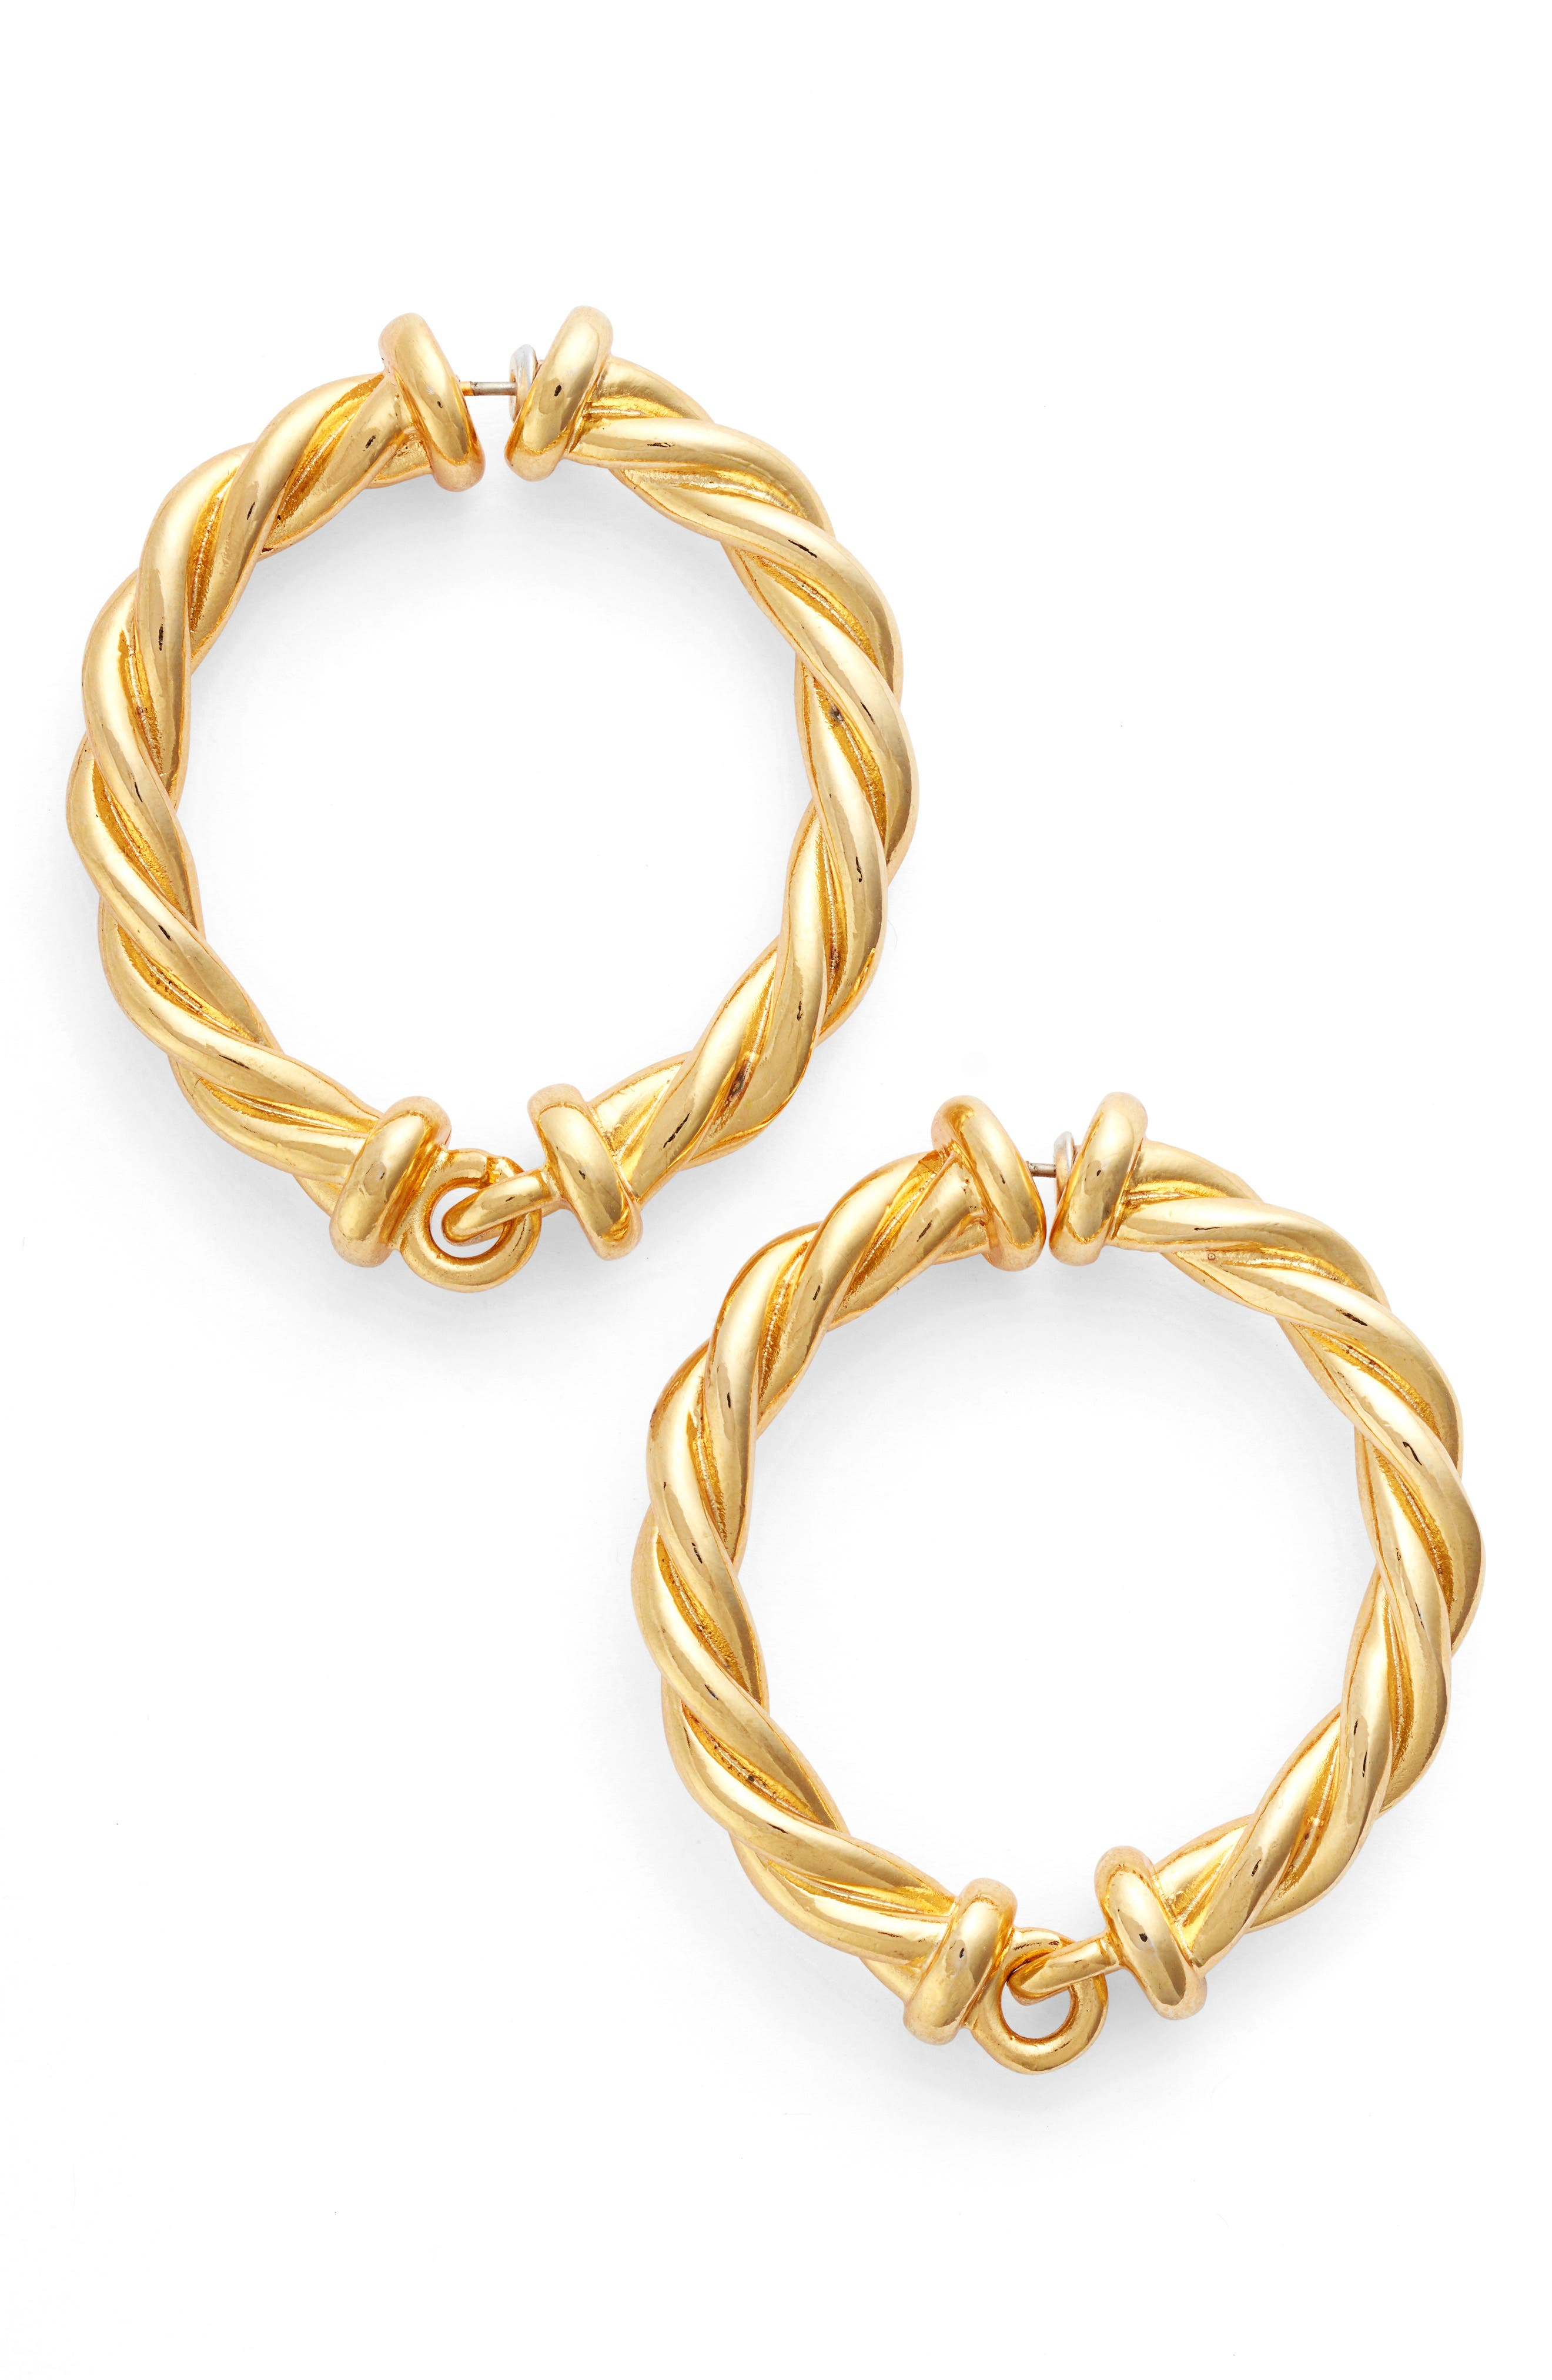 Oscar de la Renta Twisted Rope Hoop Earrings